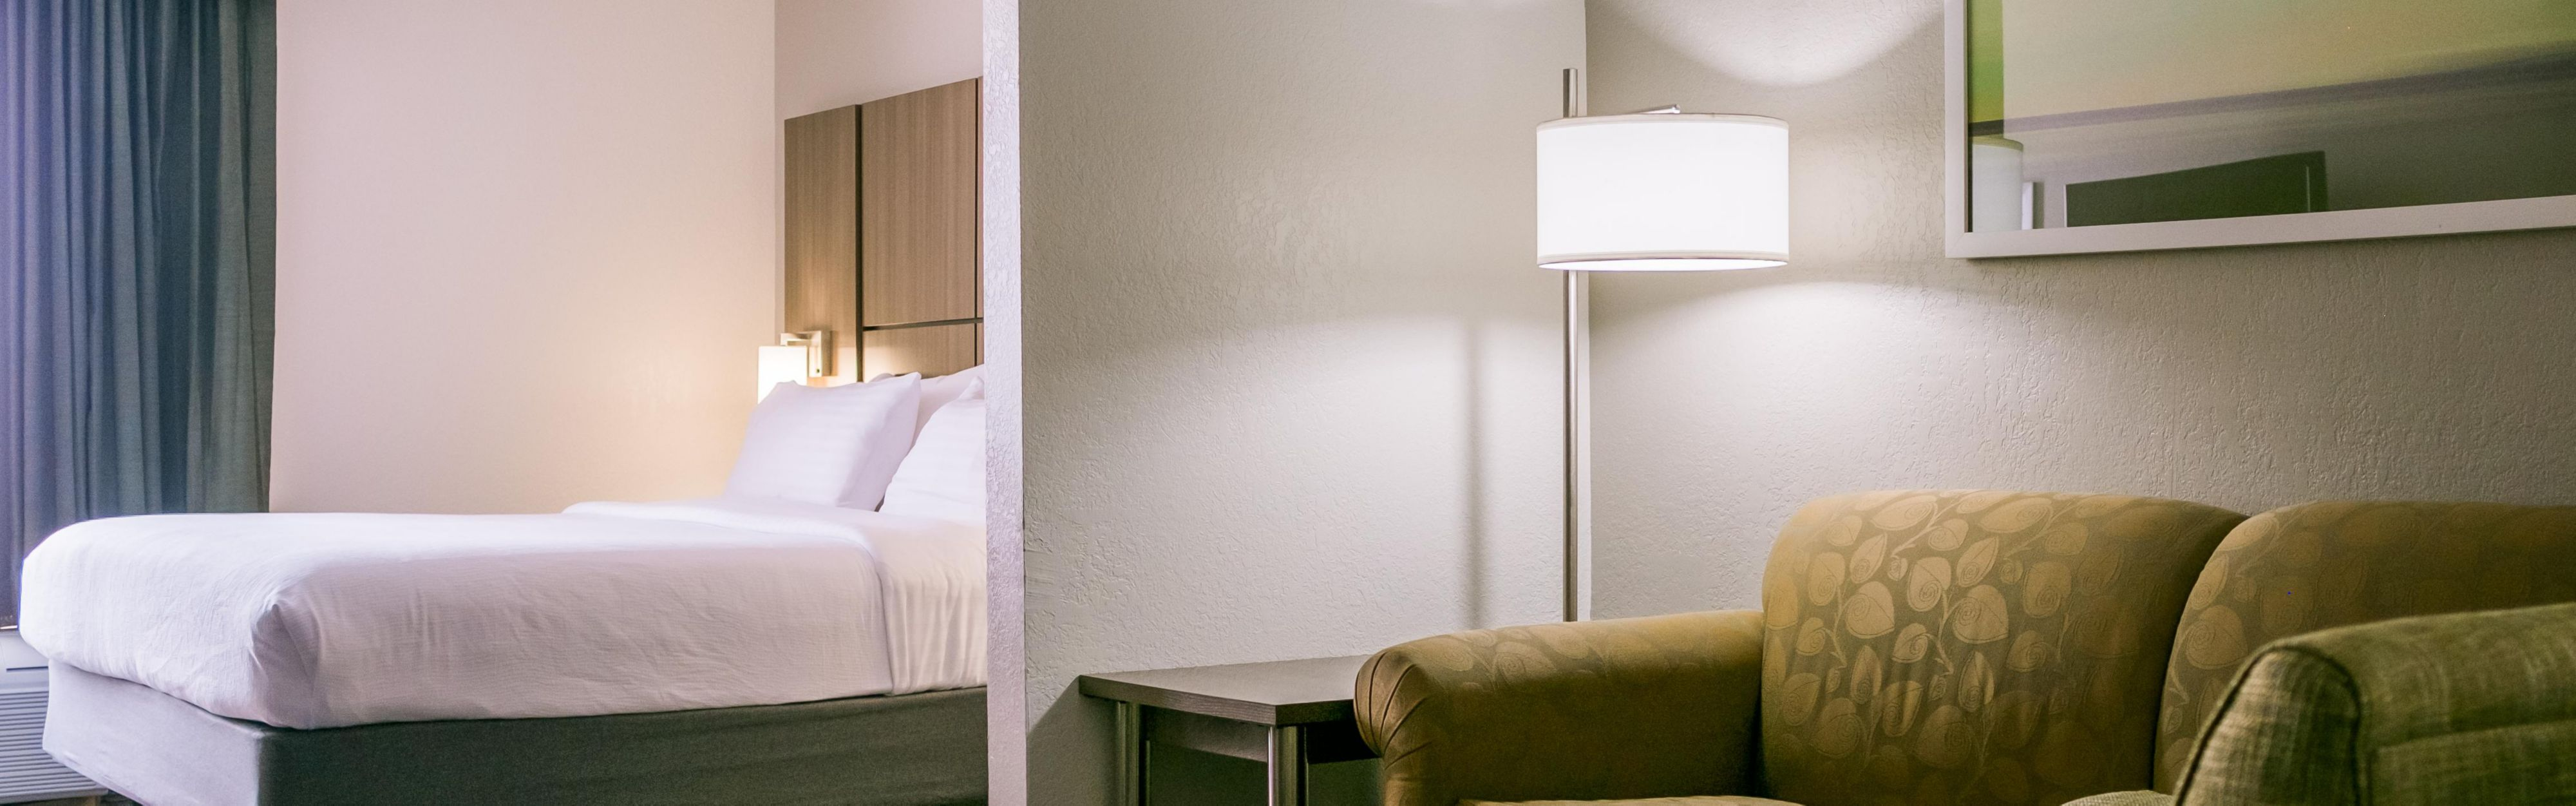 Holiday Inn Melbourne-Viera Conference Ctr image 1